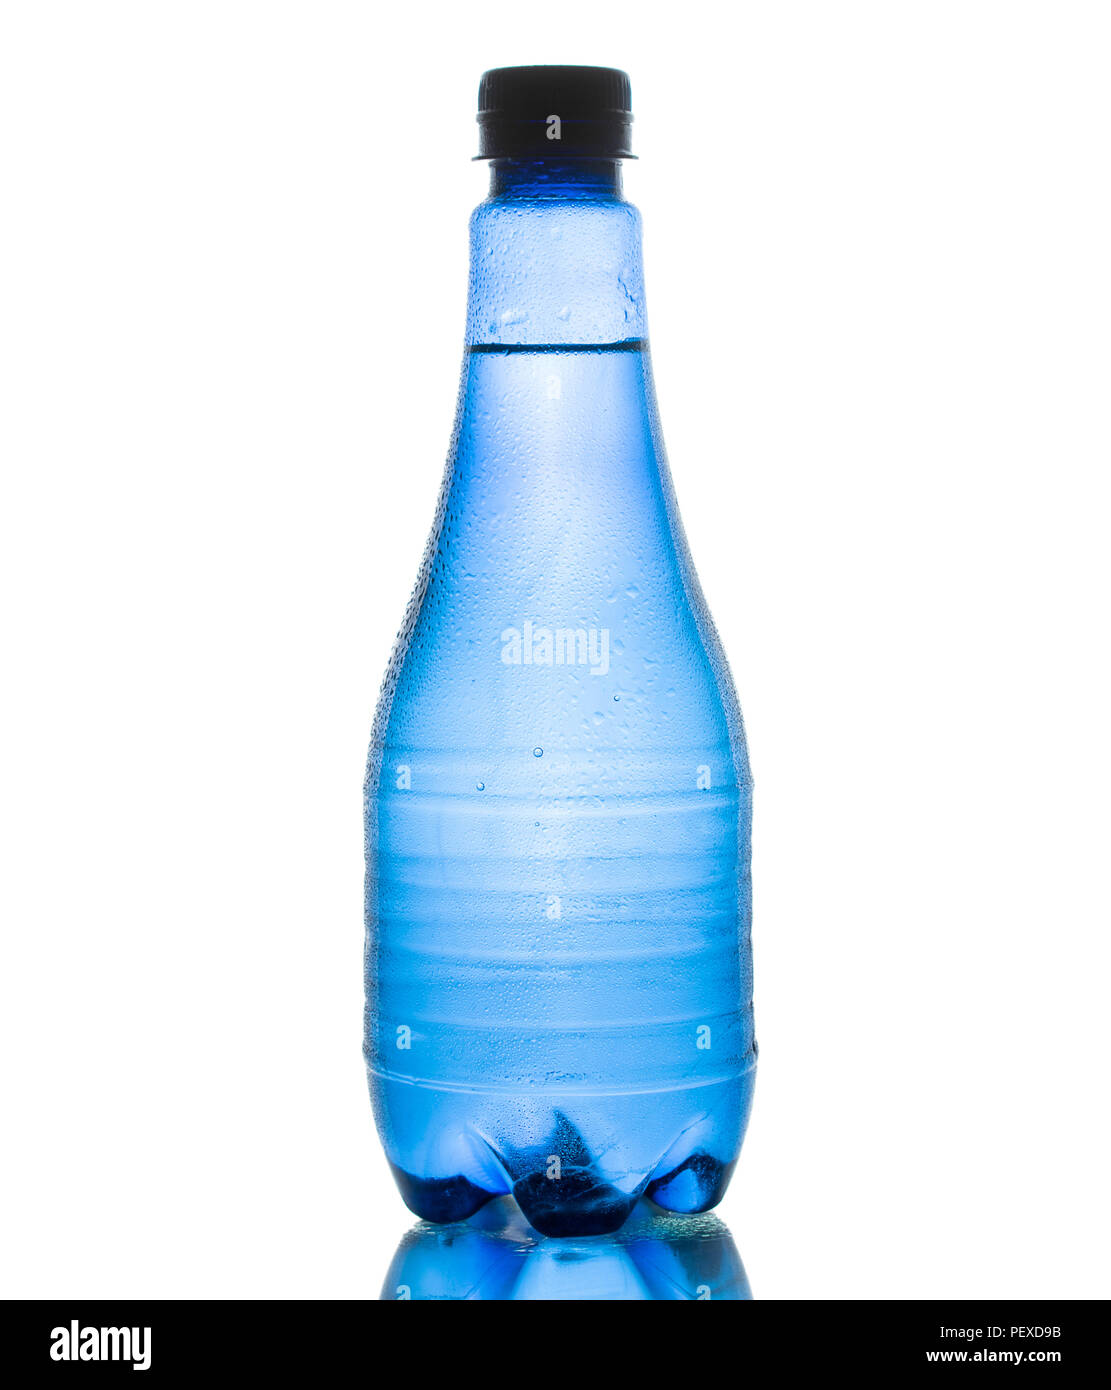 Blue water bottle isolated on white background with small water droplets - Stock Image